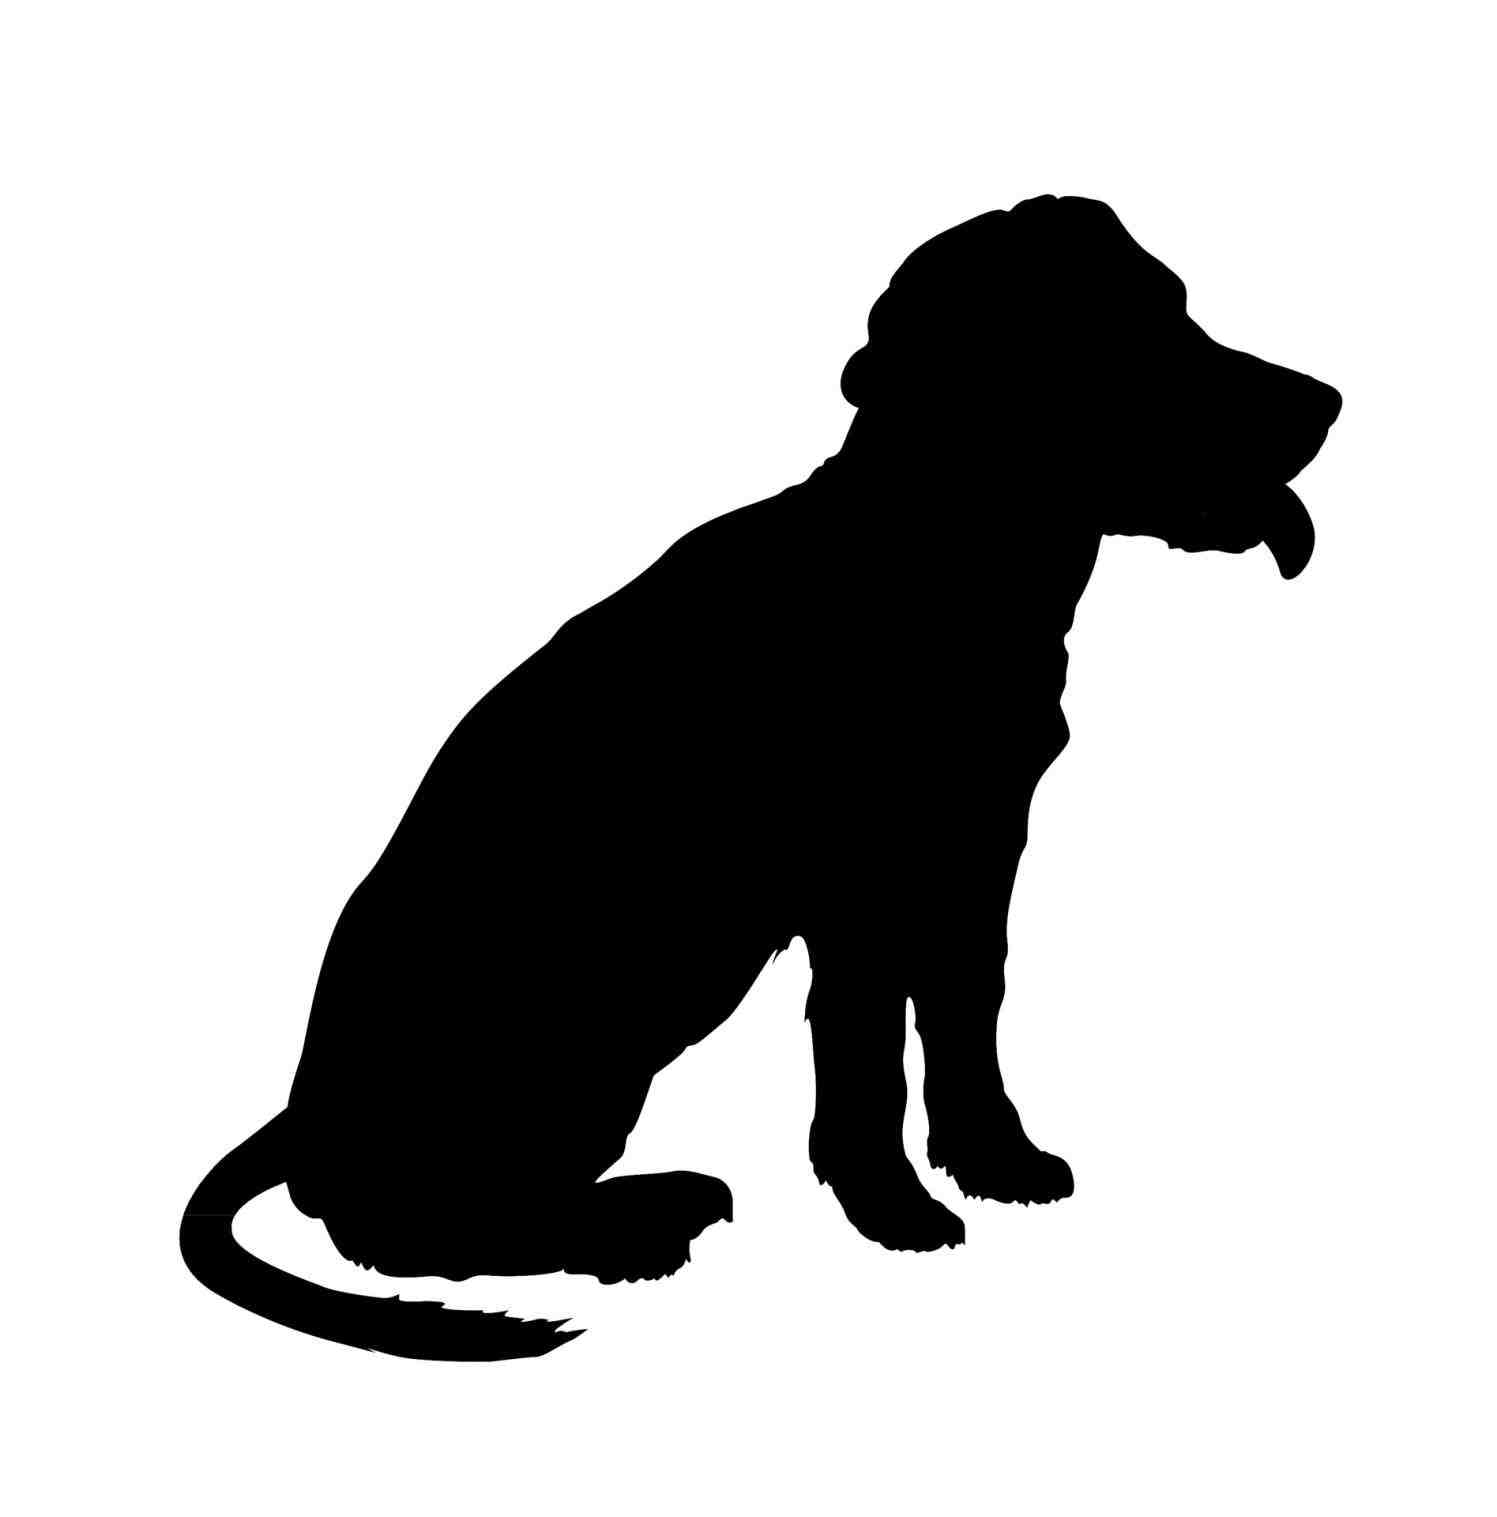 border collie silhouette clip art at getdrawings com free for rh getdrawings com